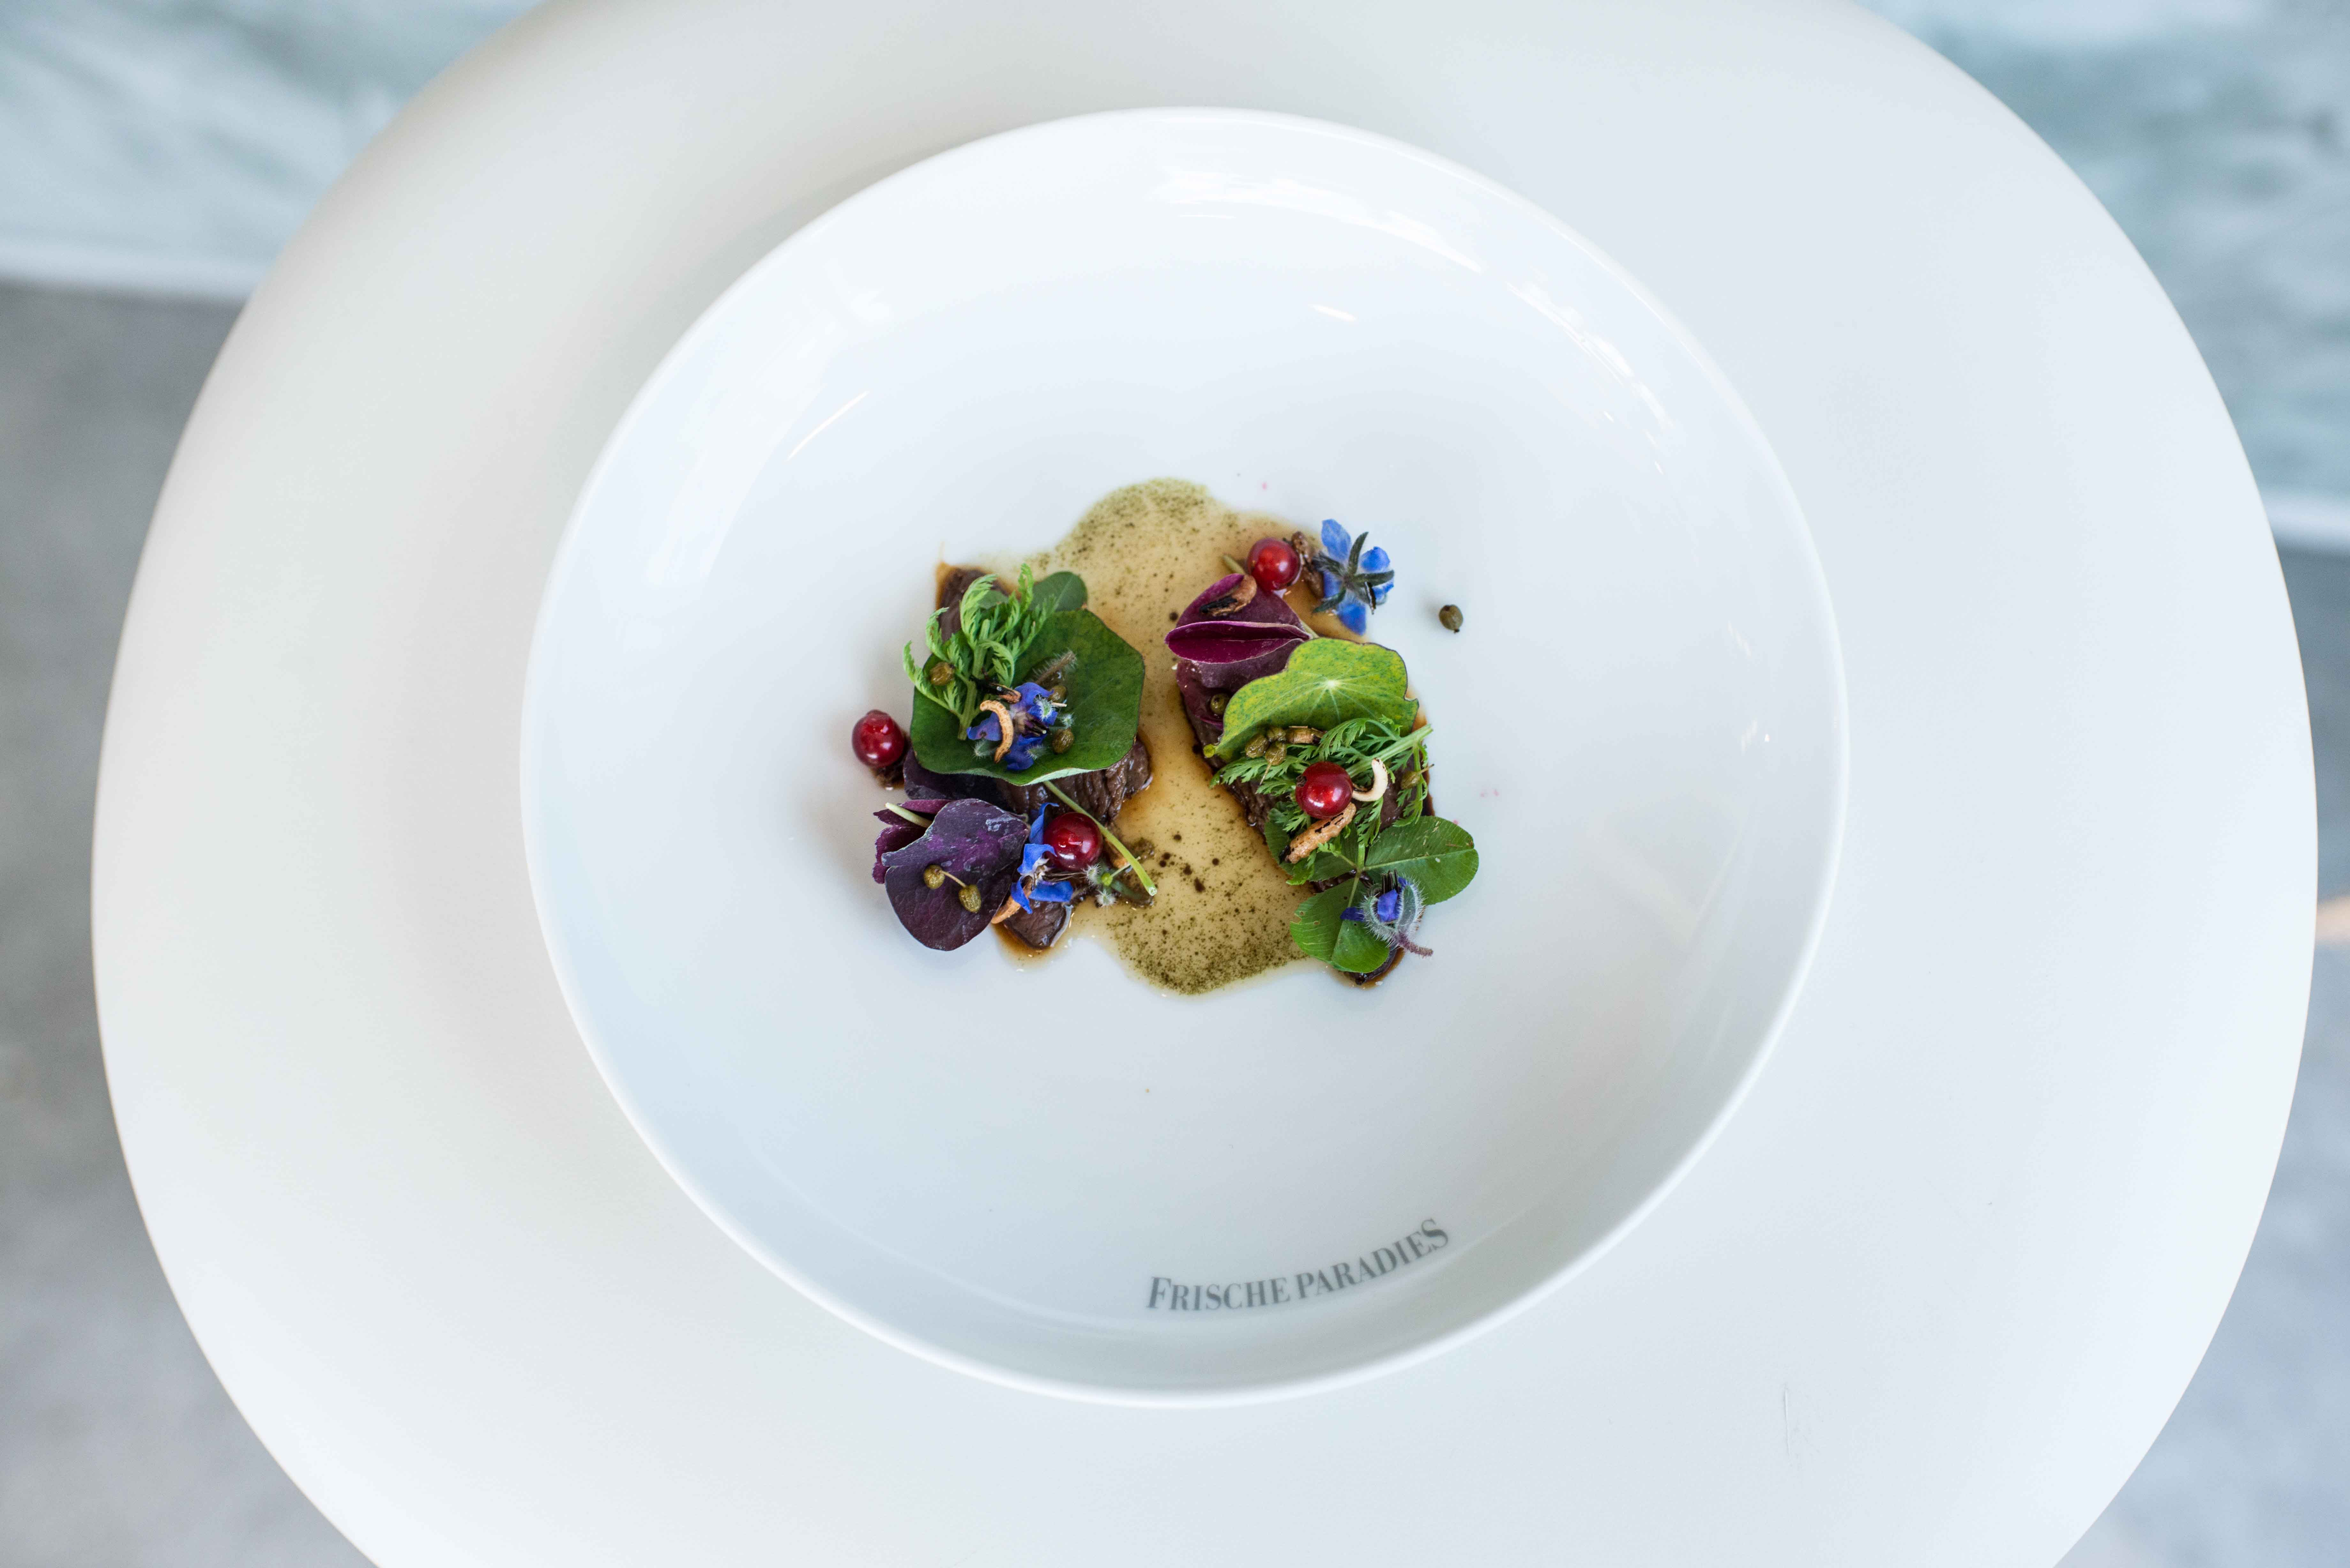 adv mediendesign - food fotografie1